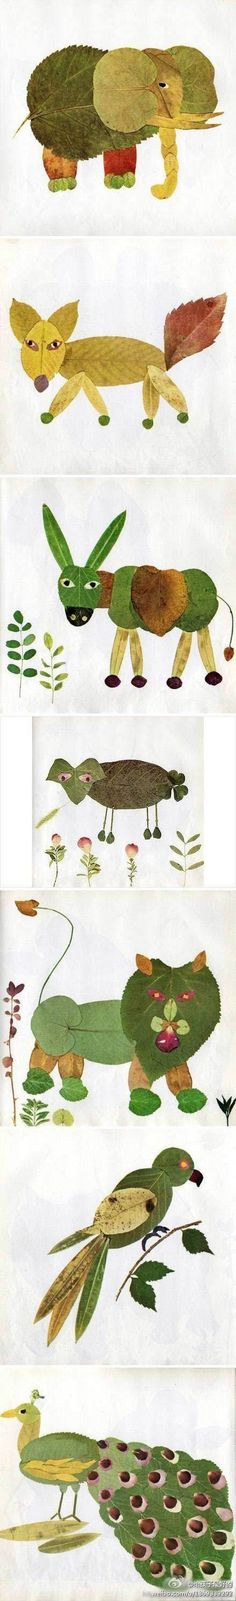 Leaf Animals ...she's crafty with the grands